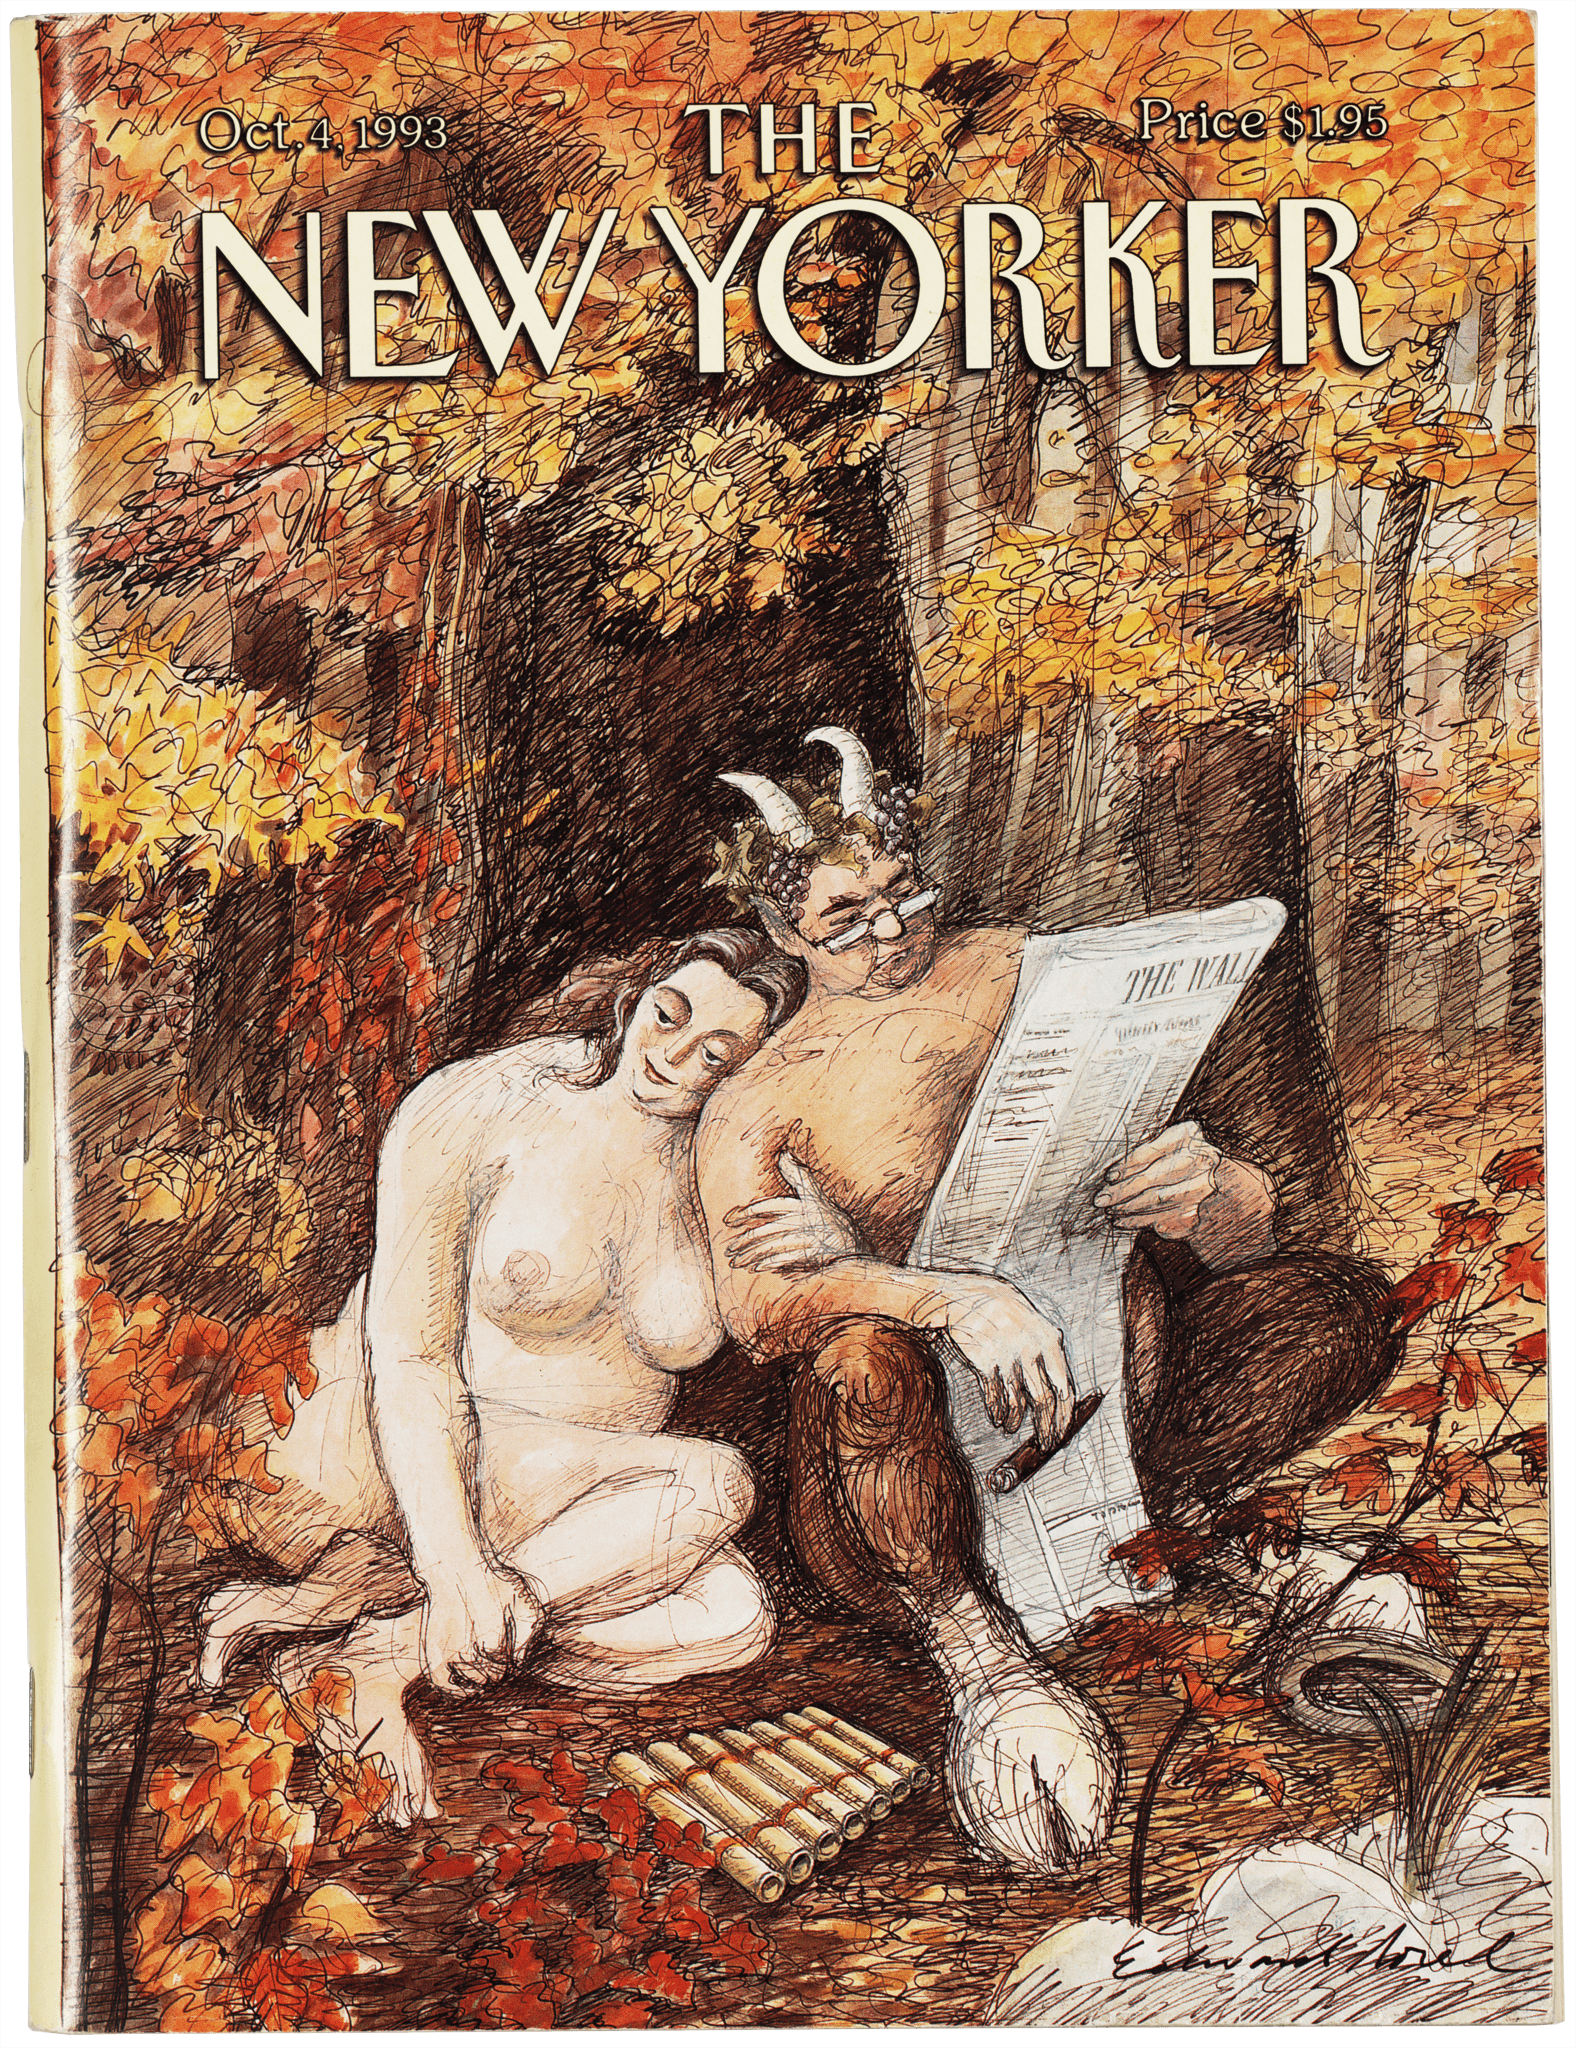 NewYorker-Oct4-1993-cover_Ap_Resized.png